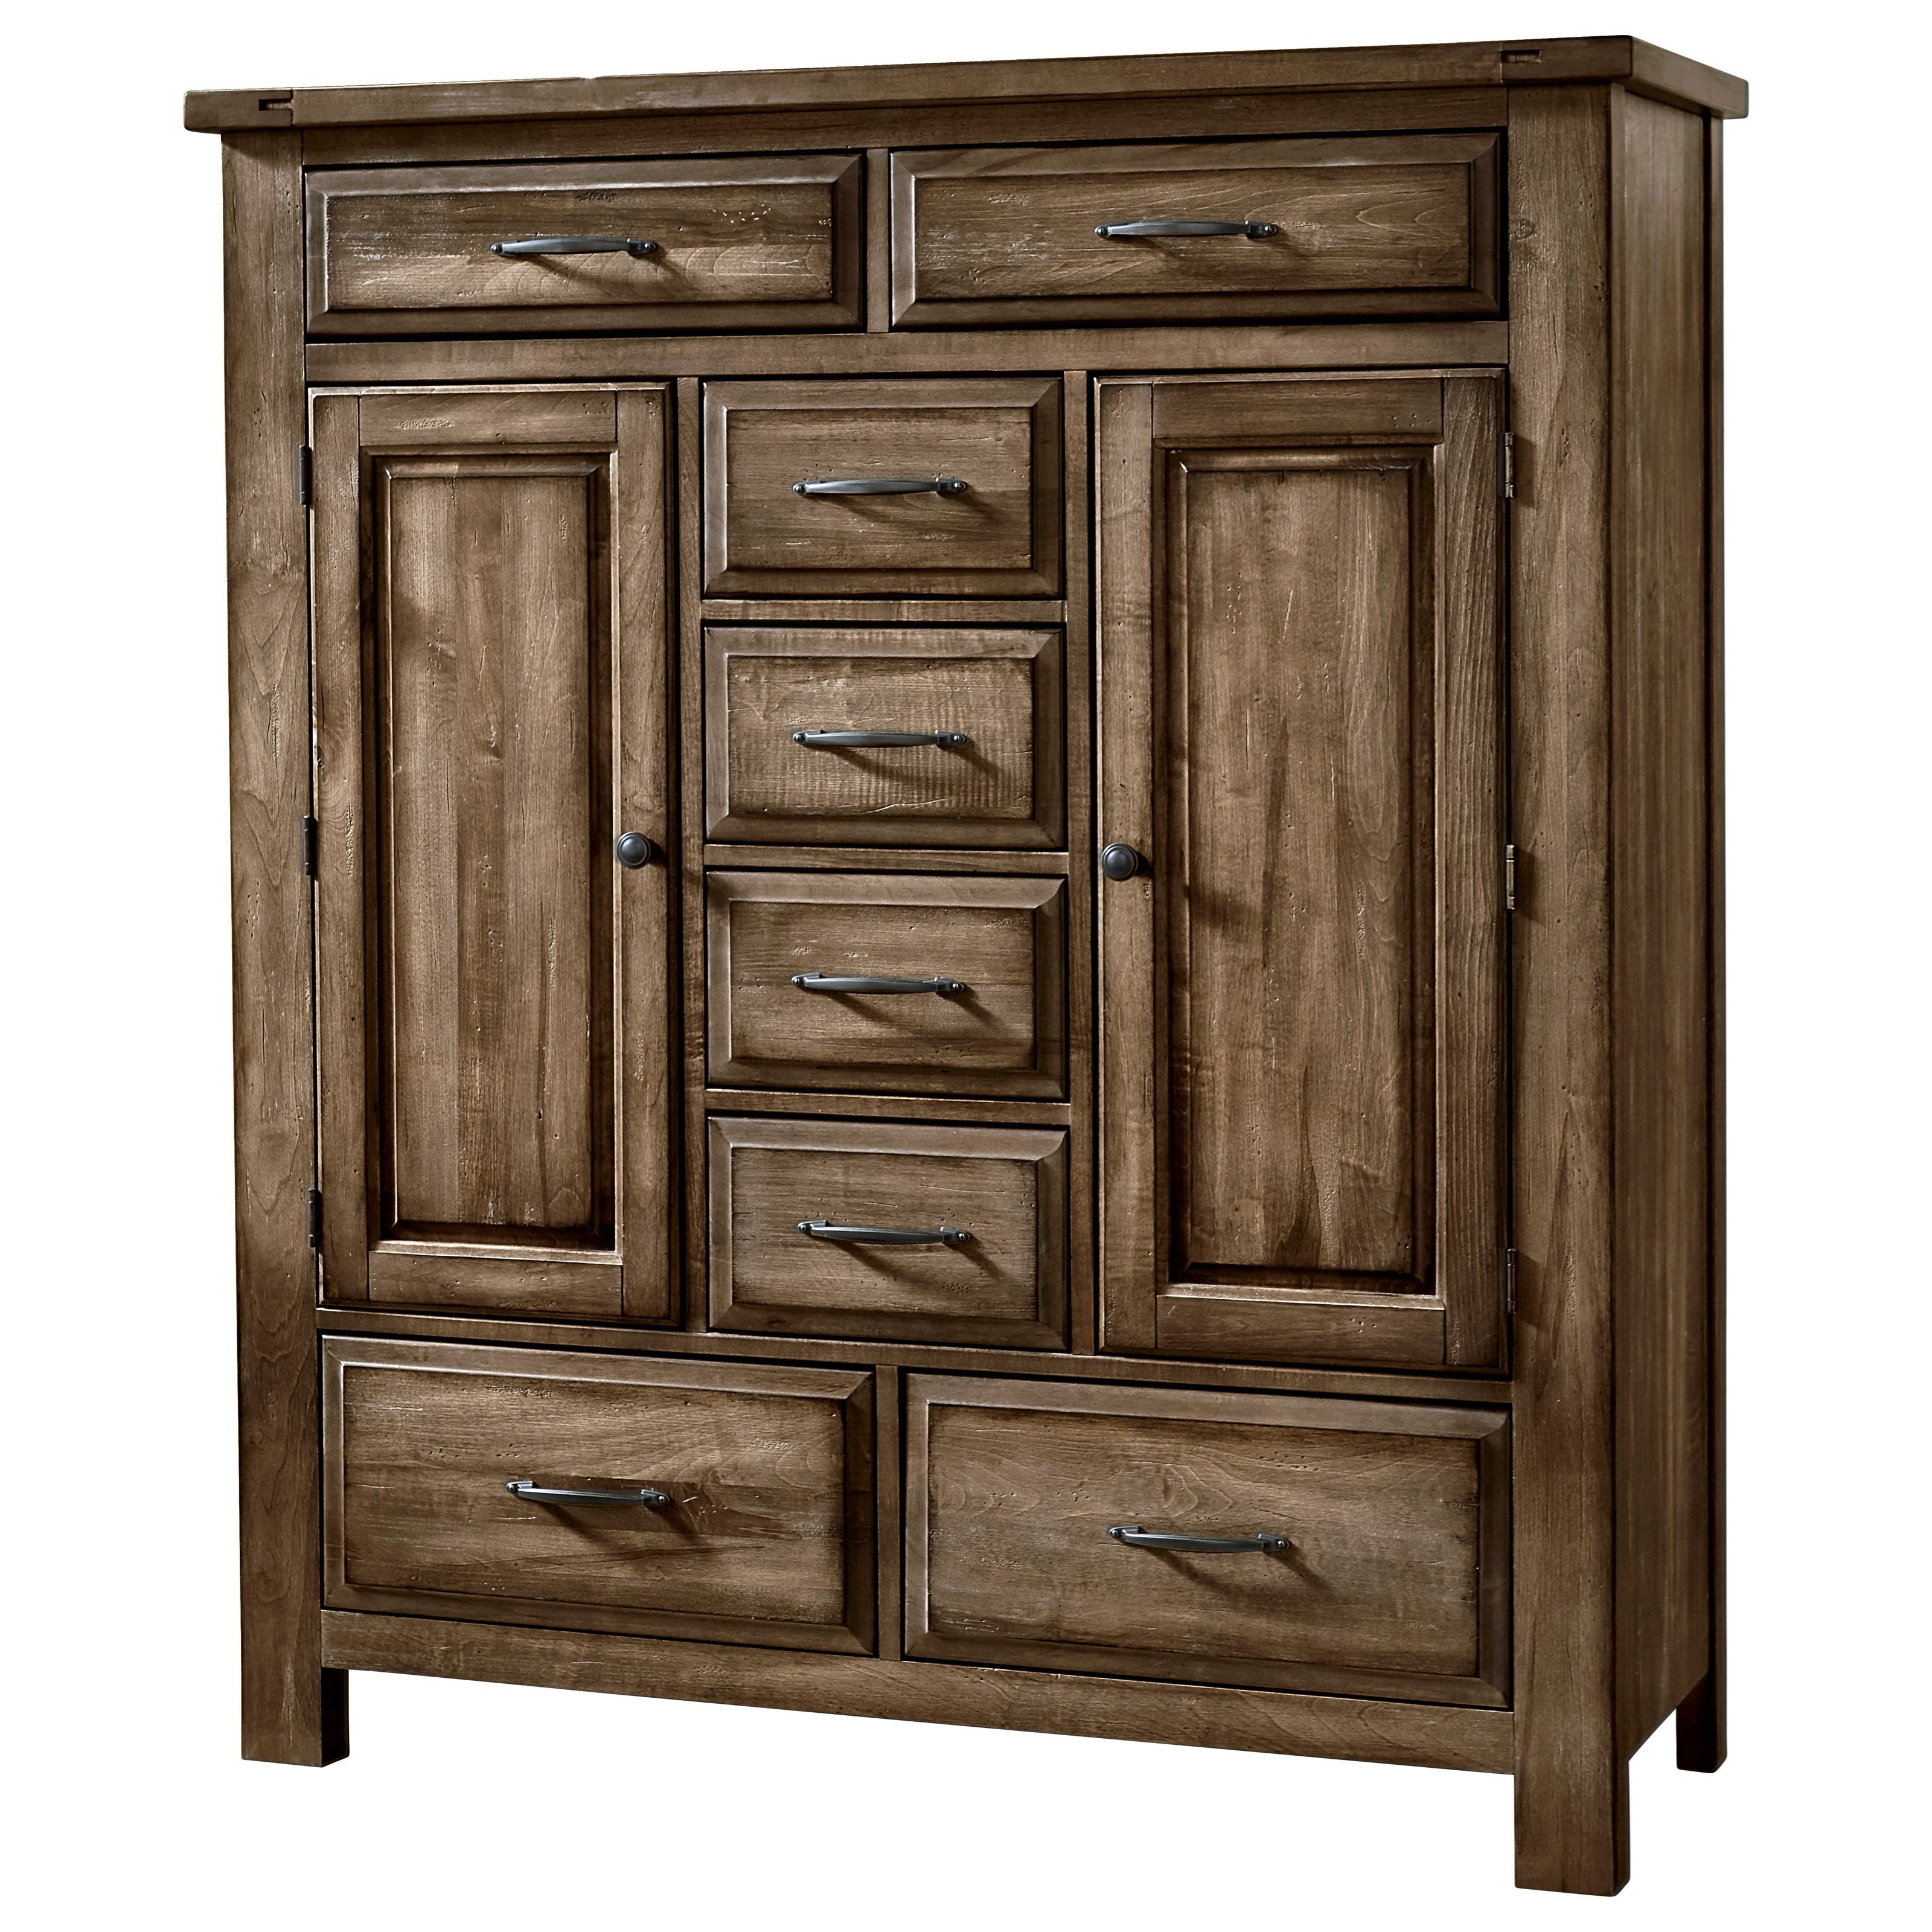 Maple Road Sweater Chest - 8 Drawers 2 Doors by Artisan & Post at Lapeer Furniture & Mattress Center